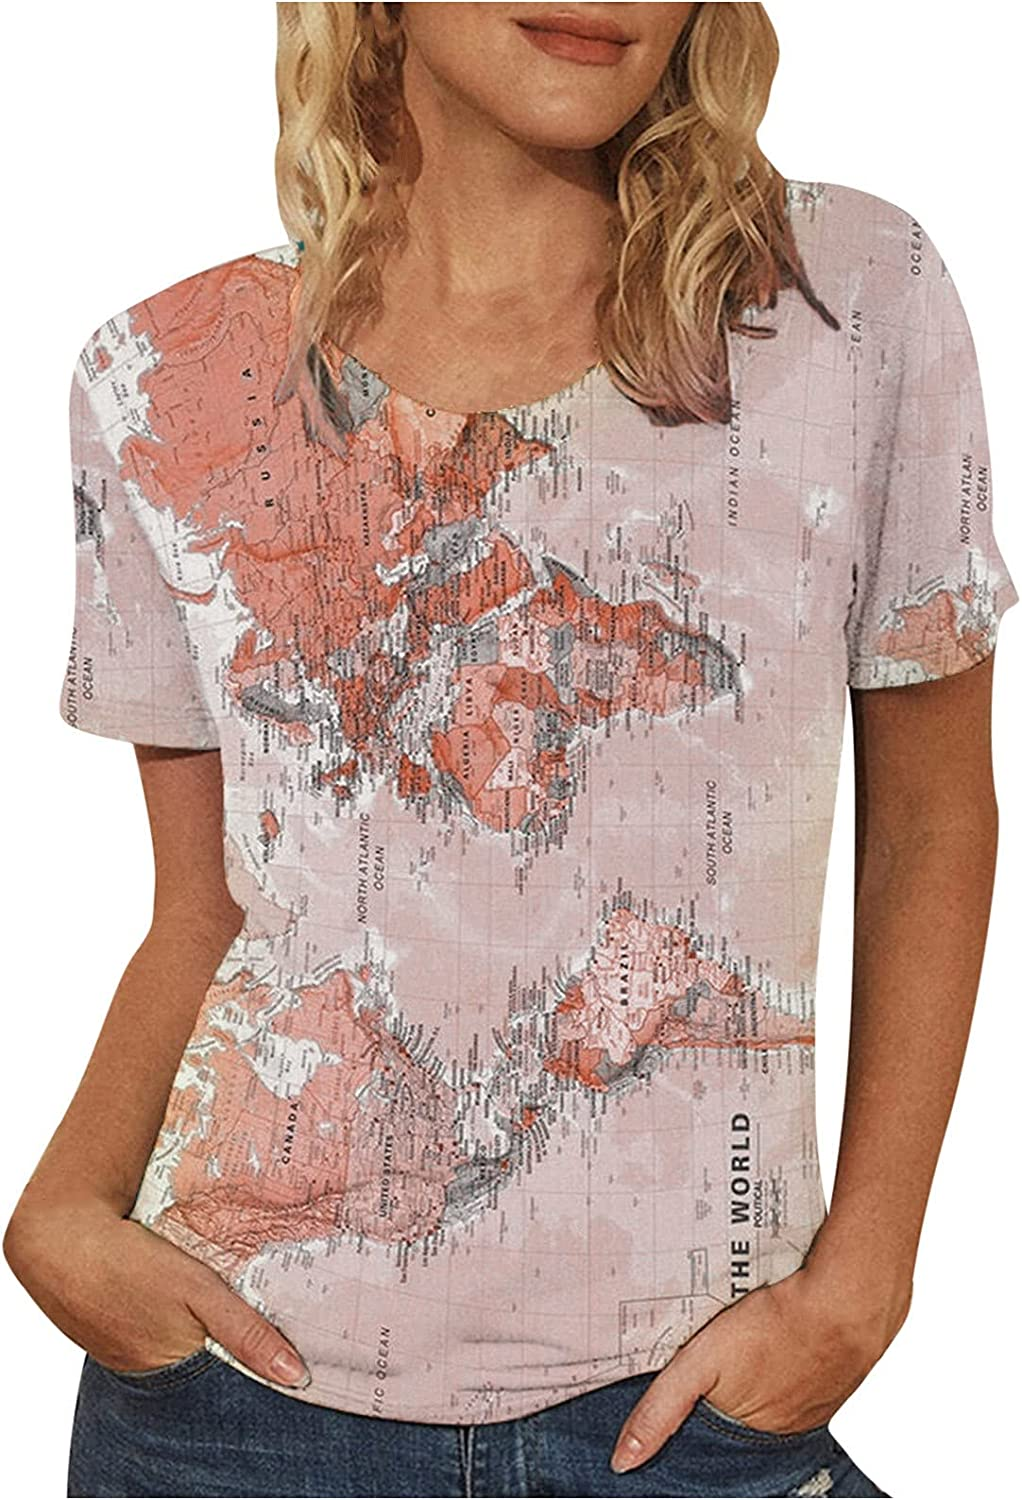 Oxodoi Women 3D Graphic T-Shirt World Map Print Tee Shirt Loose Summer Casual V-Neck Short Sleeve Funny Tops Blouse